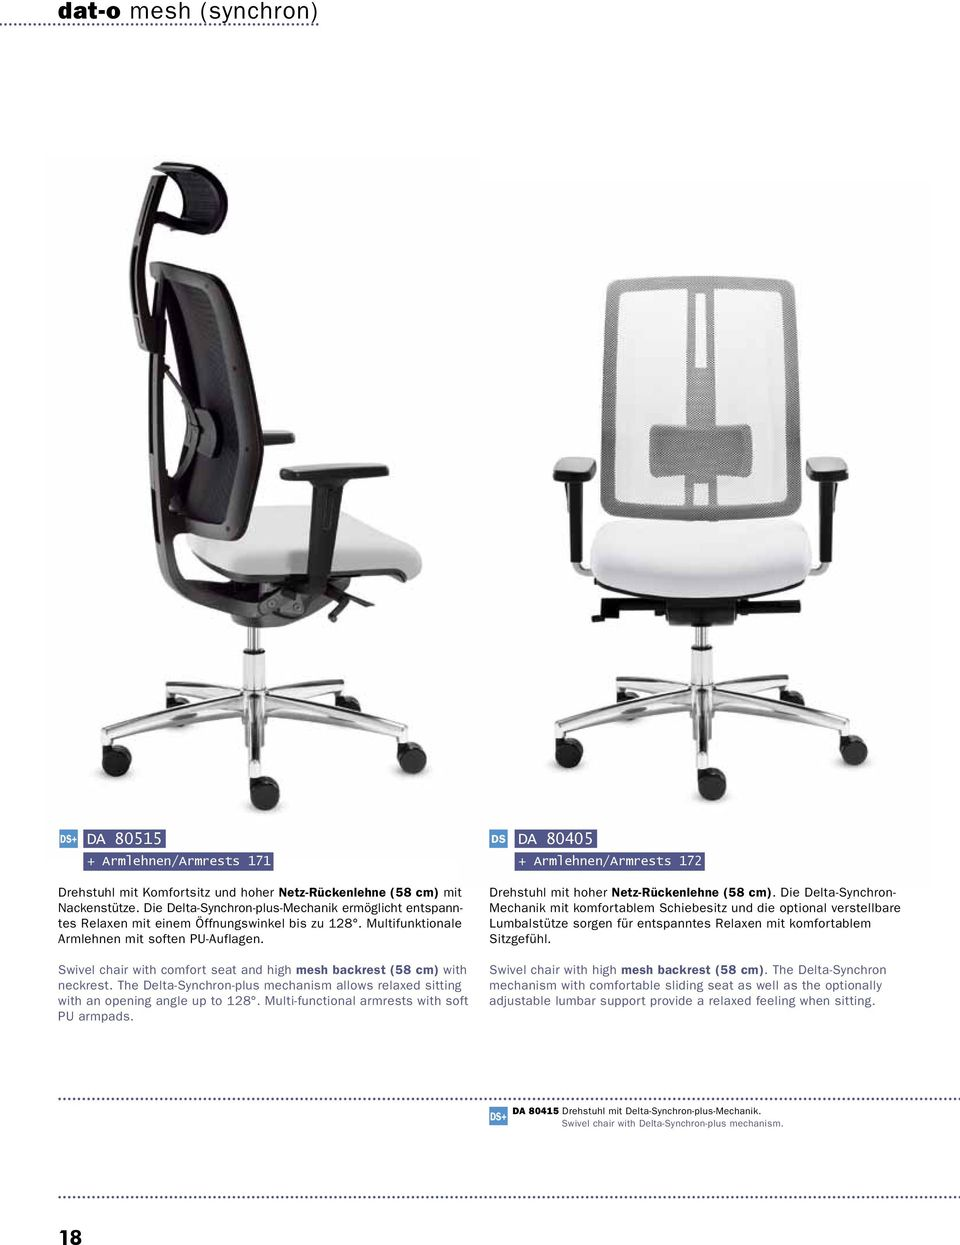 Swivel chair with comfort seat and high mesh backrest (58 cm) with neckrest. The Delta-Synchron-plus mechanism allows relaxed sitting with an opening angle up to 128.